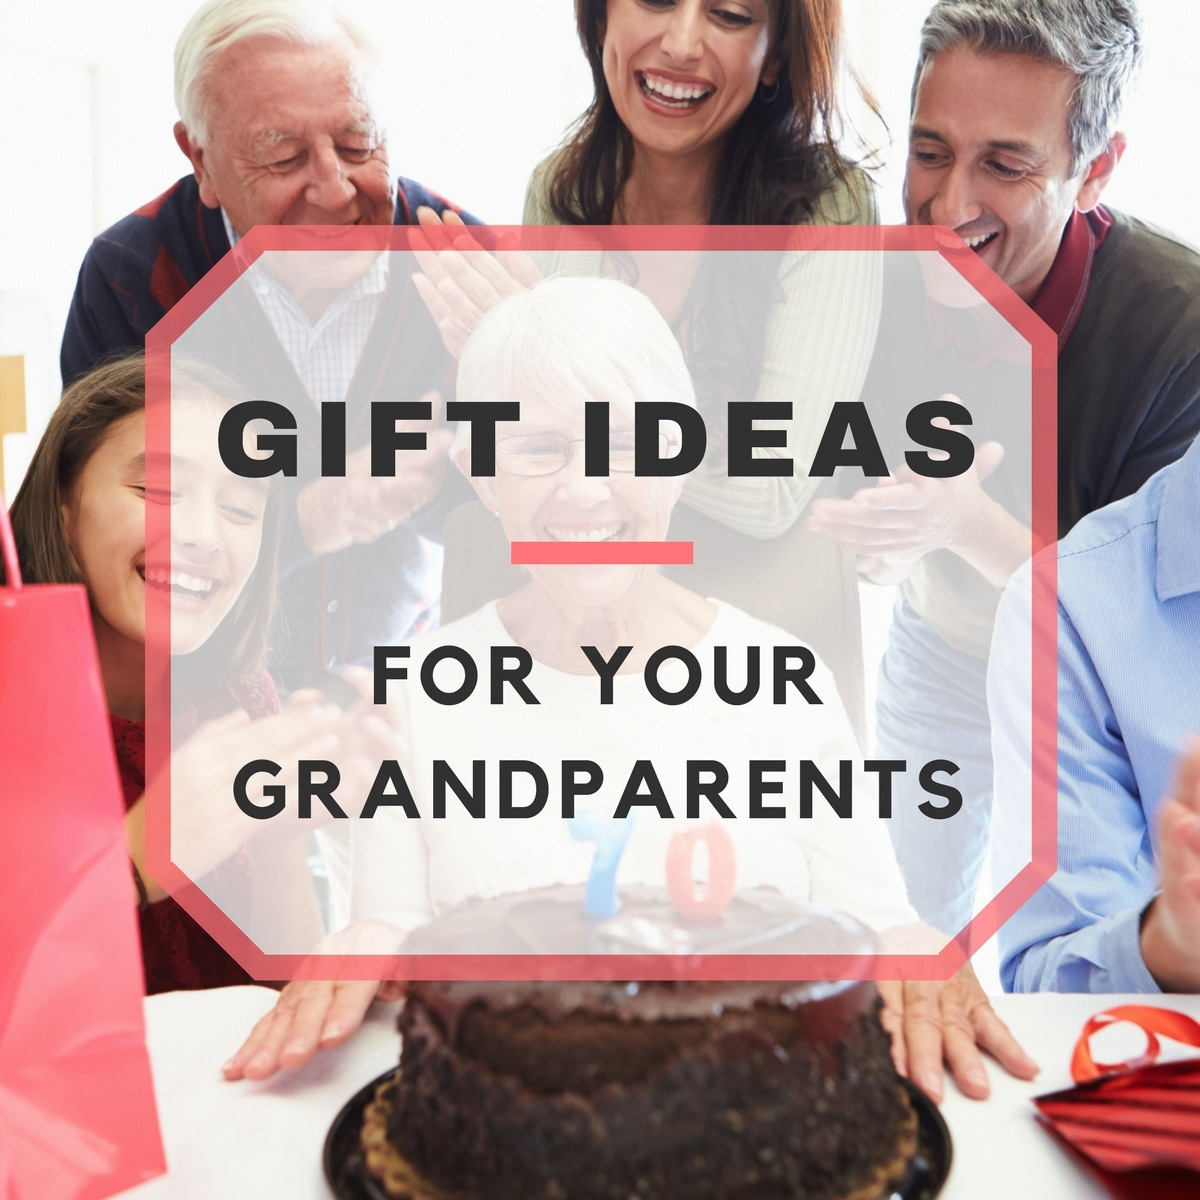 Grandparent gifts for xmas